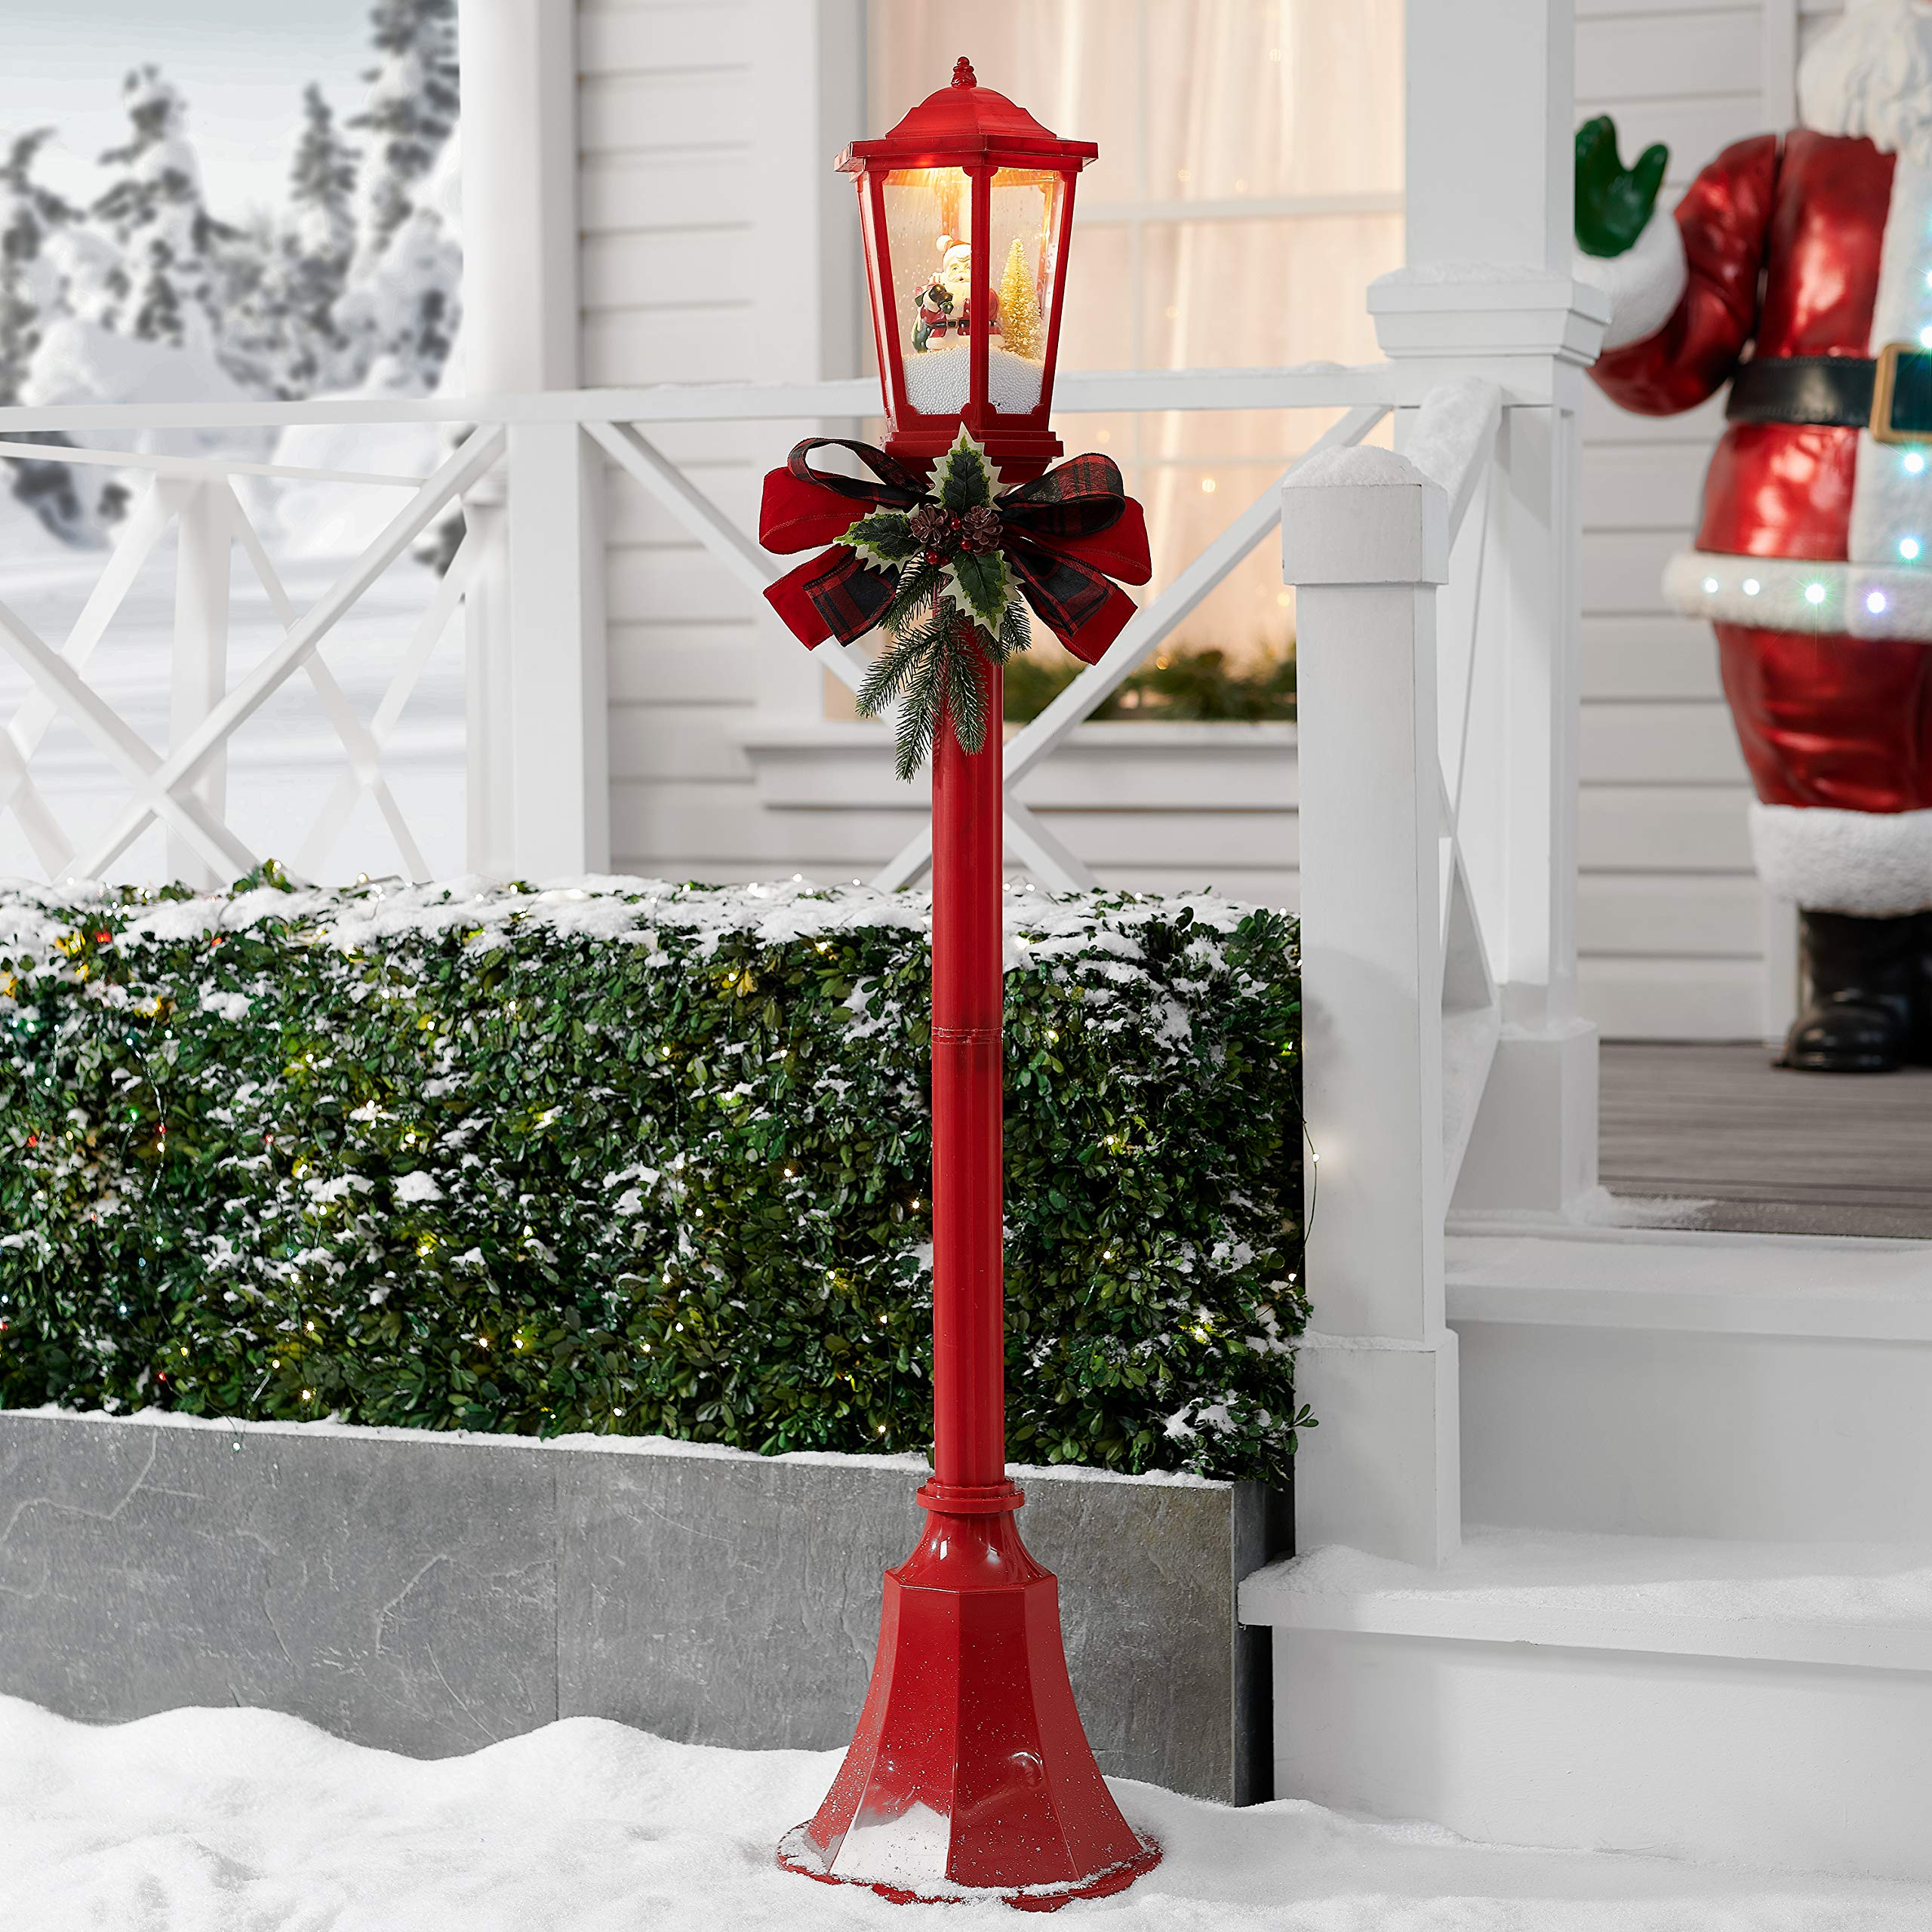 NH Bright,Attractive and Elegant 56'' Snow Blowing Santa Red Christmas Lamppost Decoration,Light up and Play Music,Plays a Variety of Holiday Melody Favorites to Get Everyone into The Christmas Spirit by NH